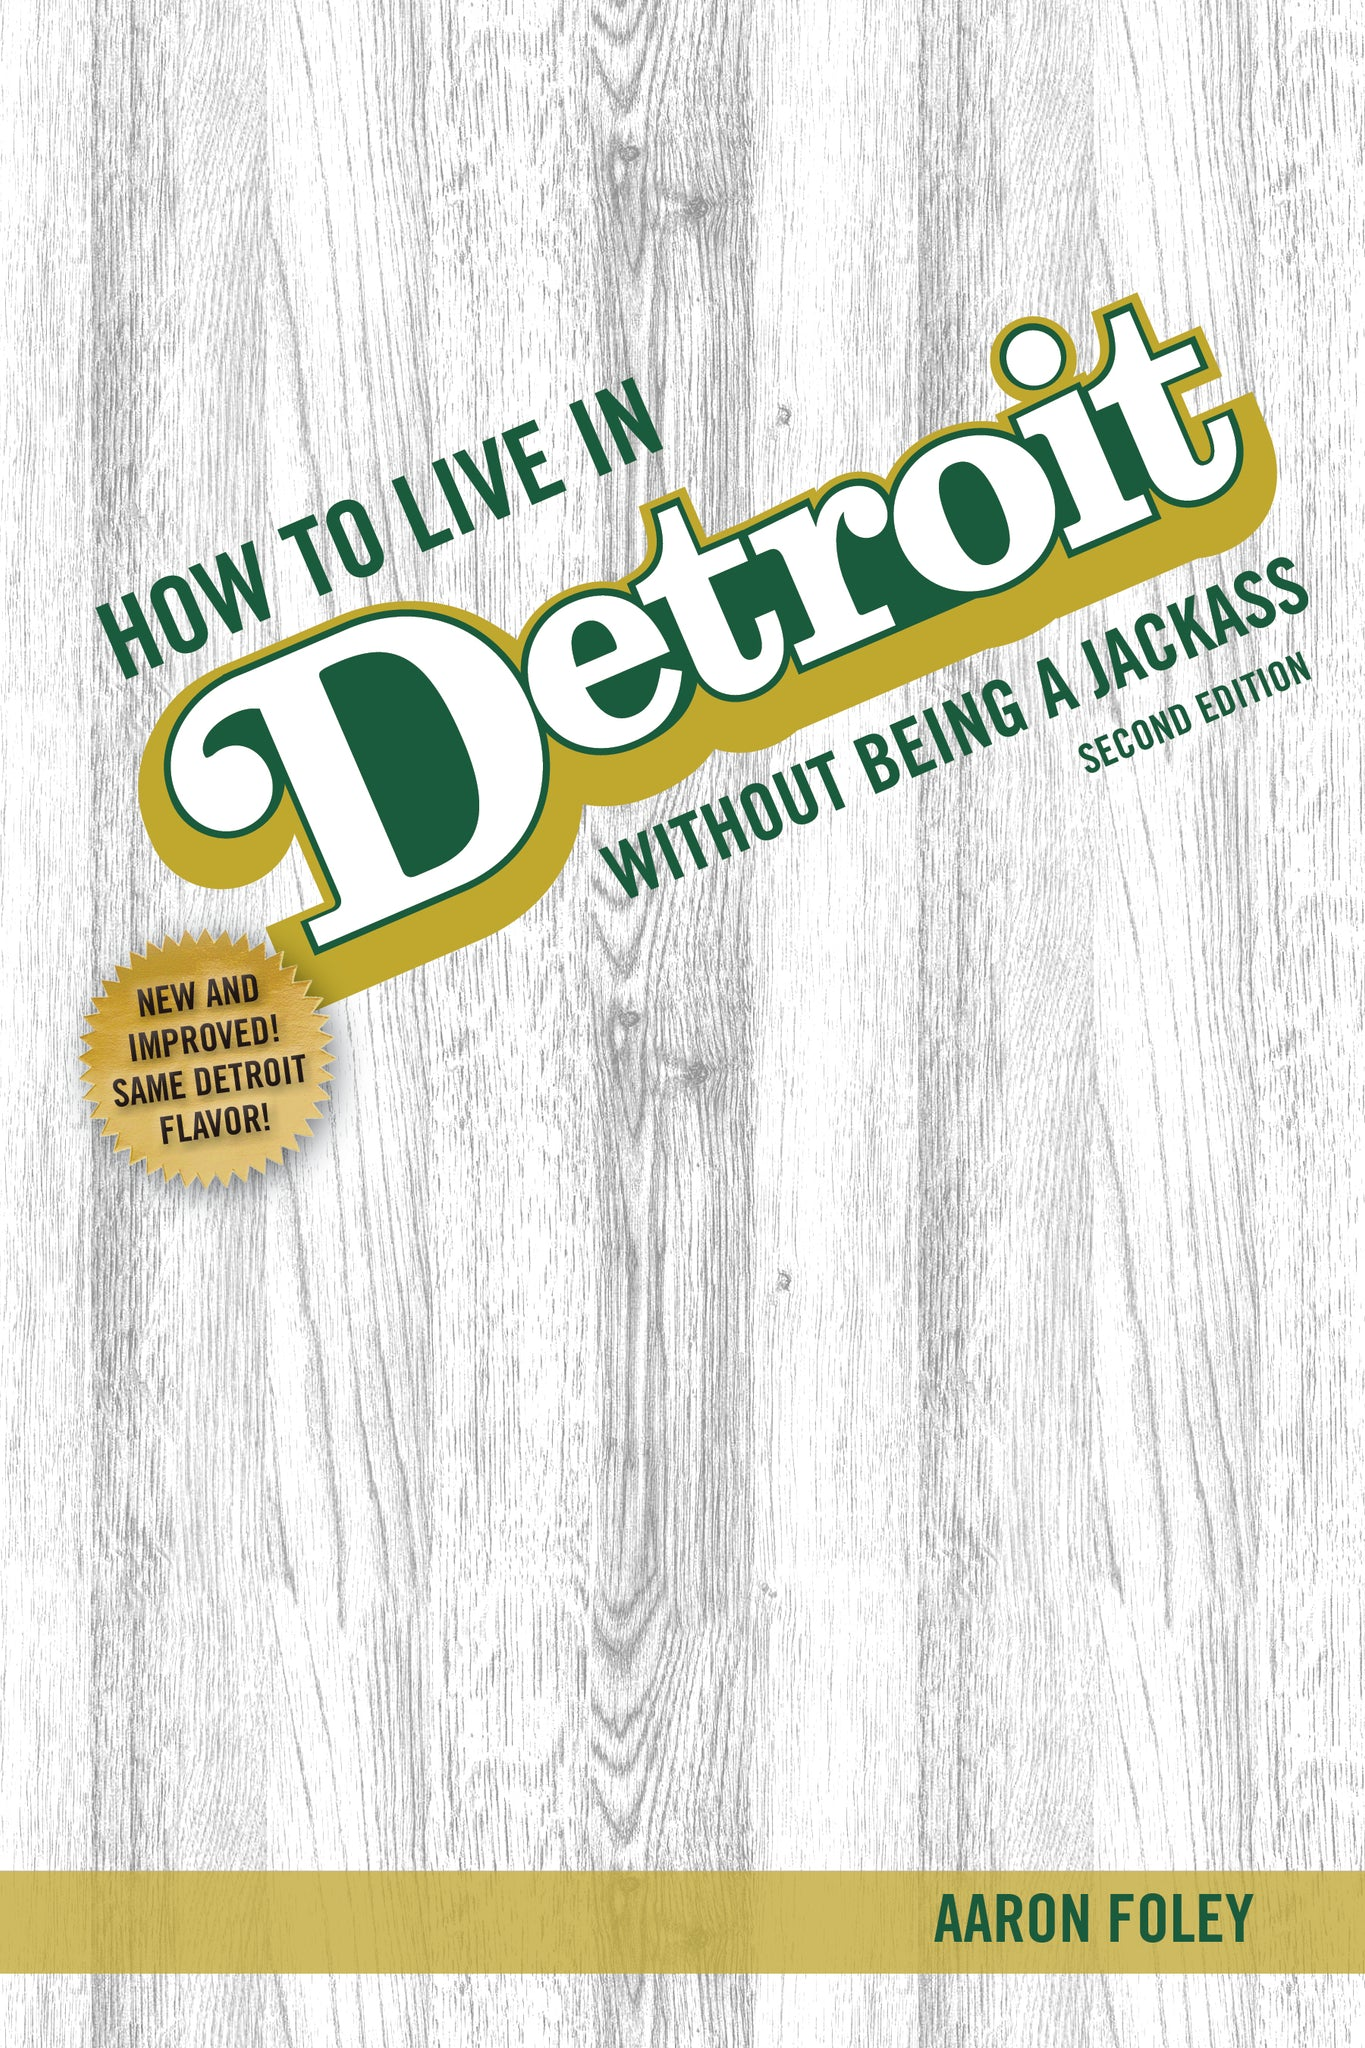 How to Live in Detroit Without Being a Jackass—Second Edition! (pre-order)